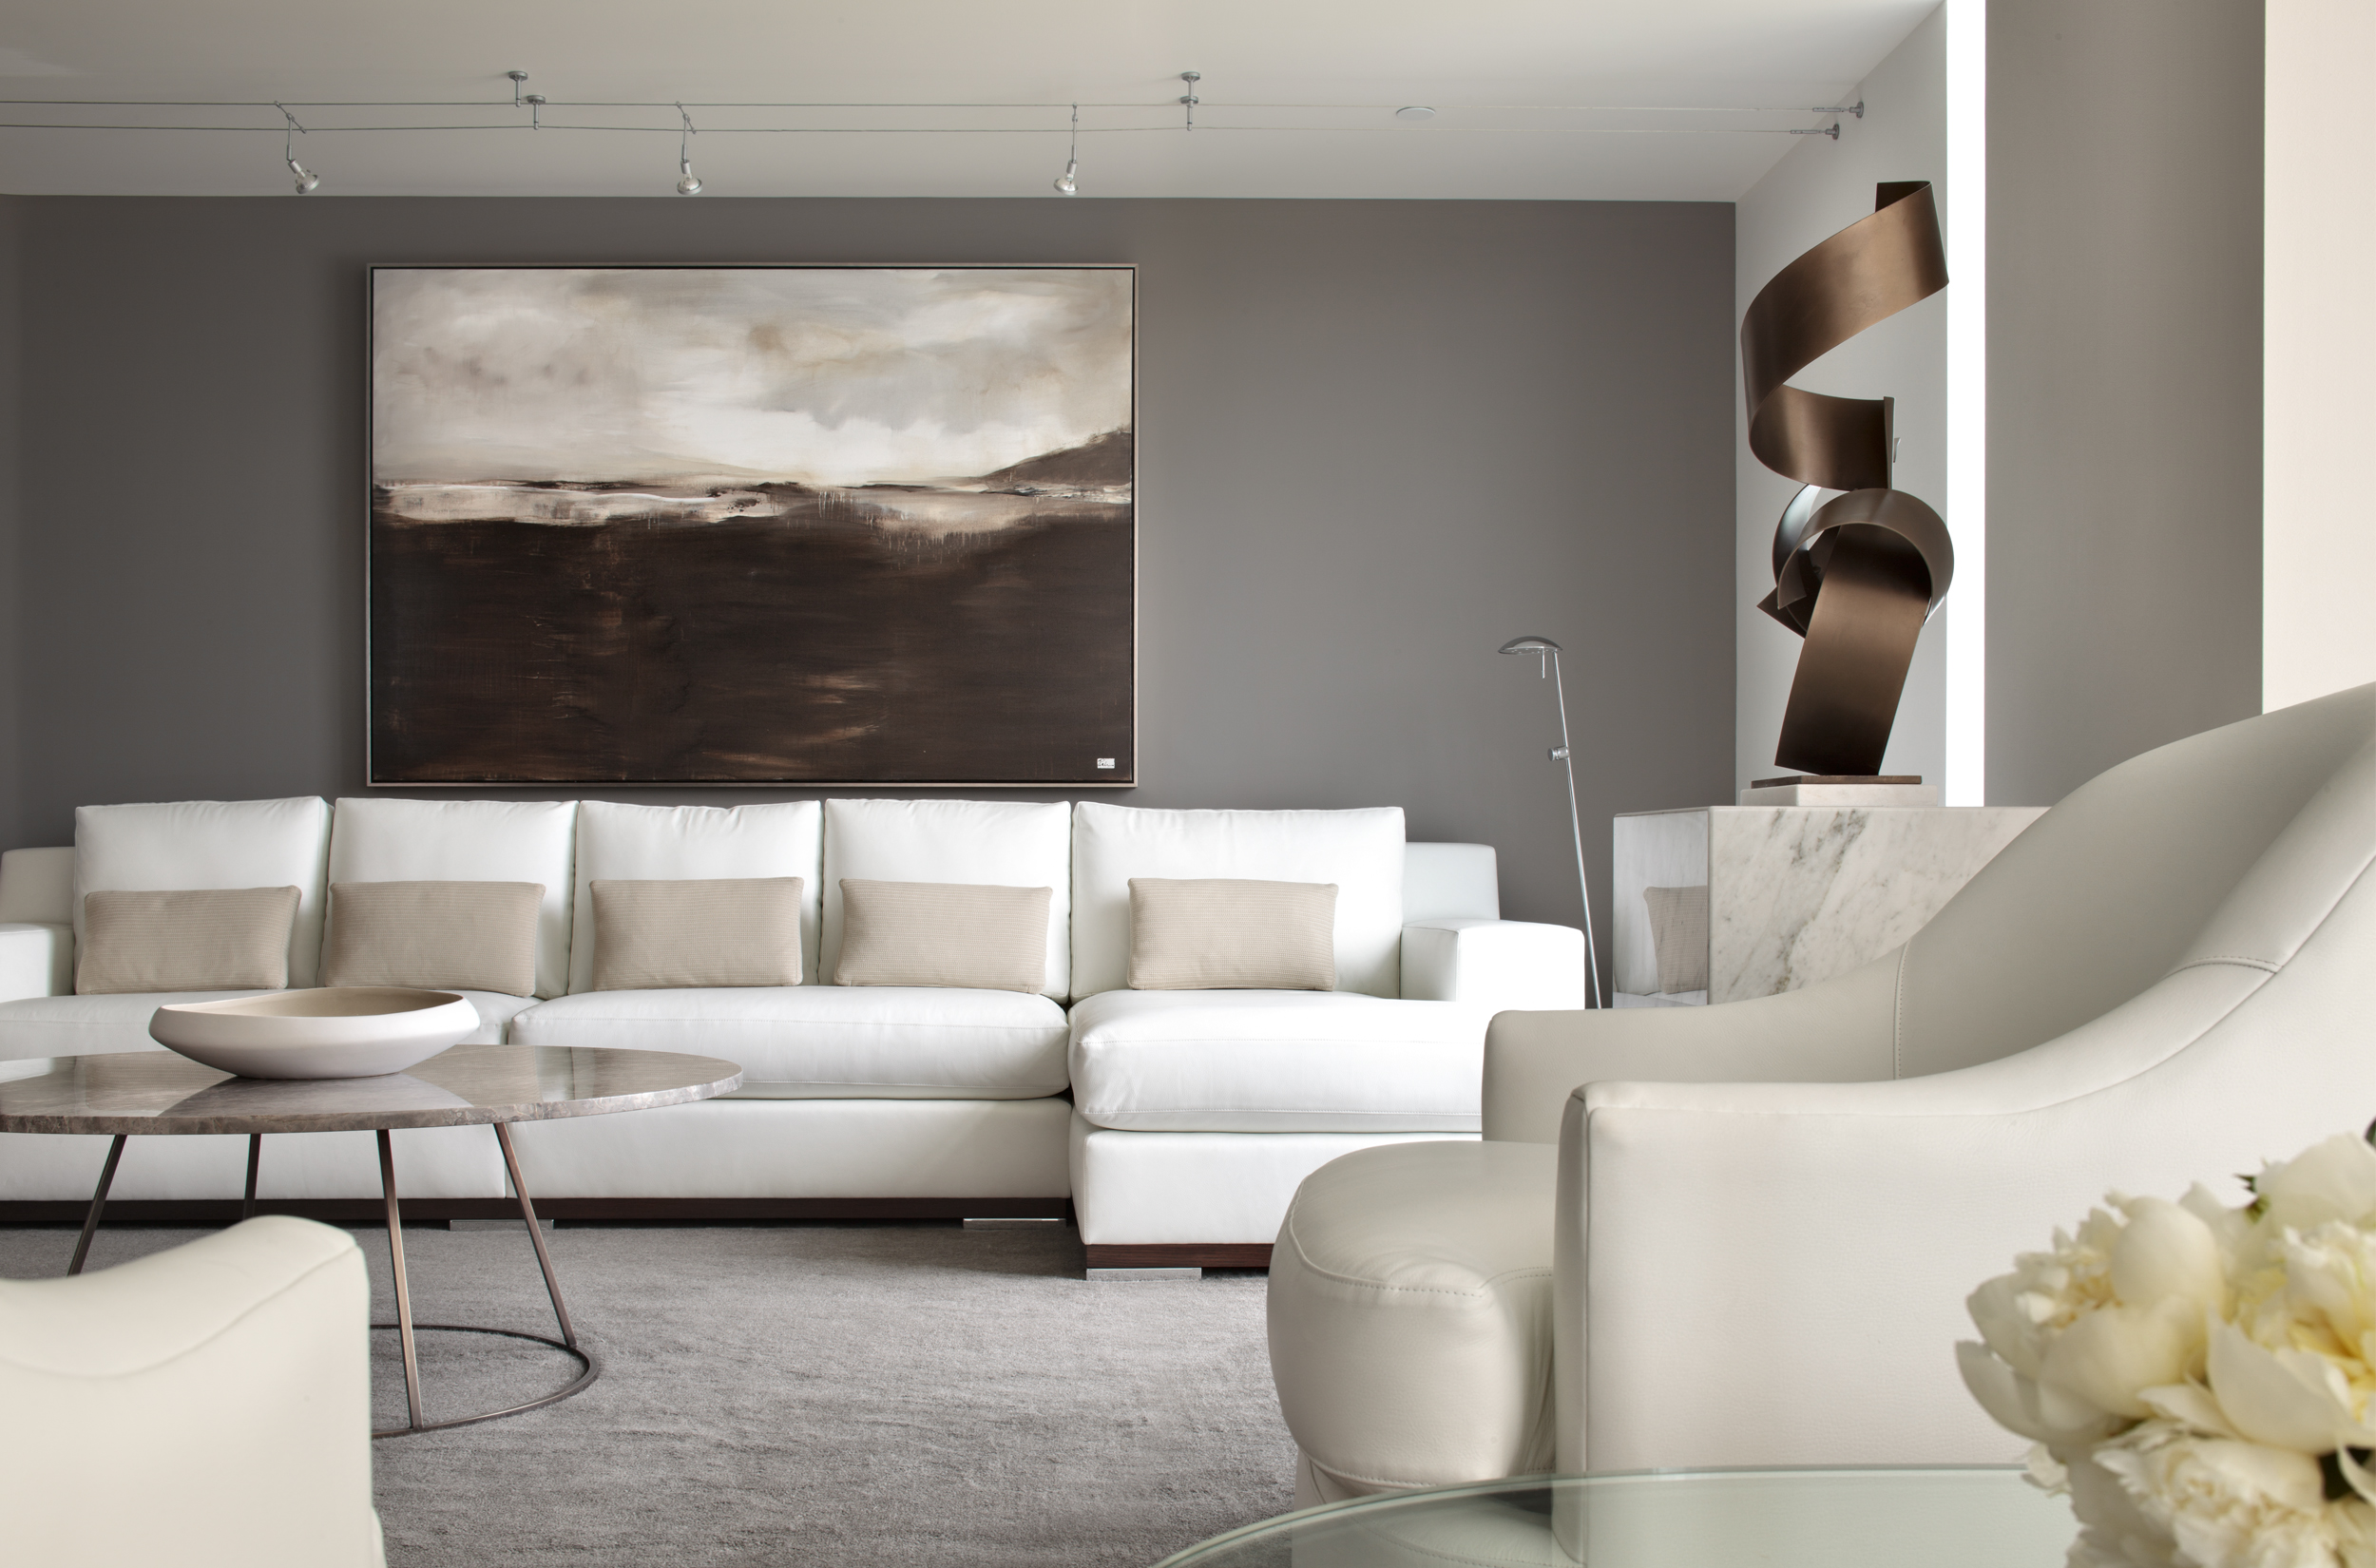 Patricia gray inc contemporary interior design vancouver for An interior designer